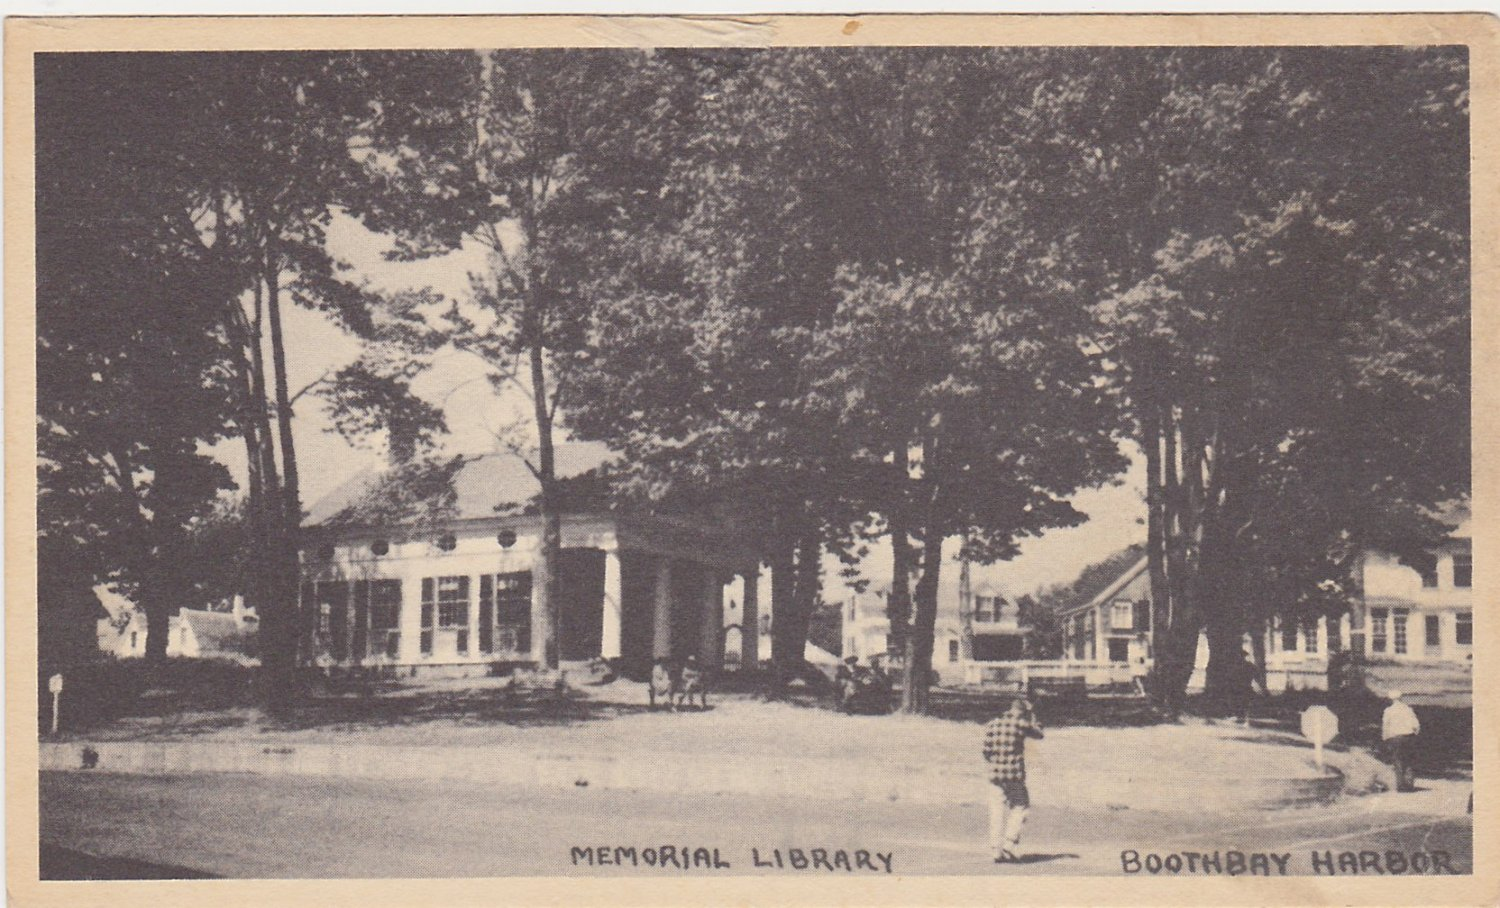 Memorial Library Boothbay Harbor Maine Postcard